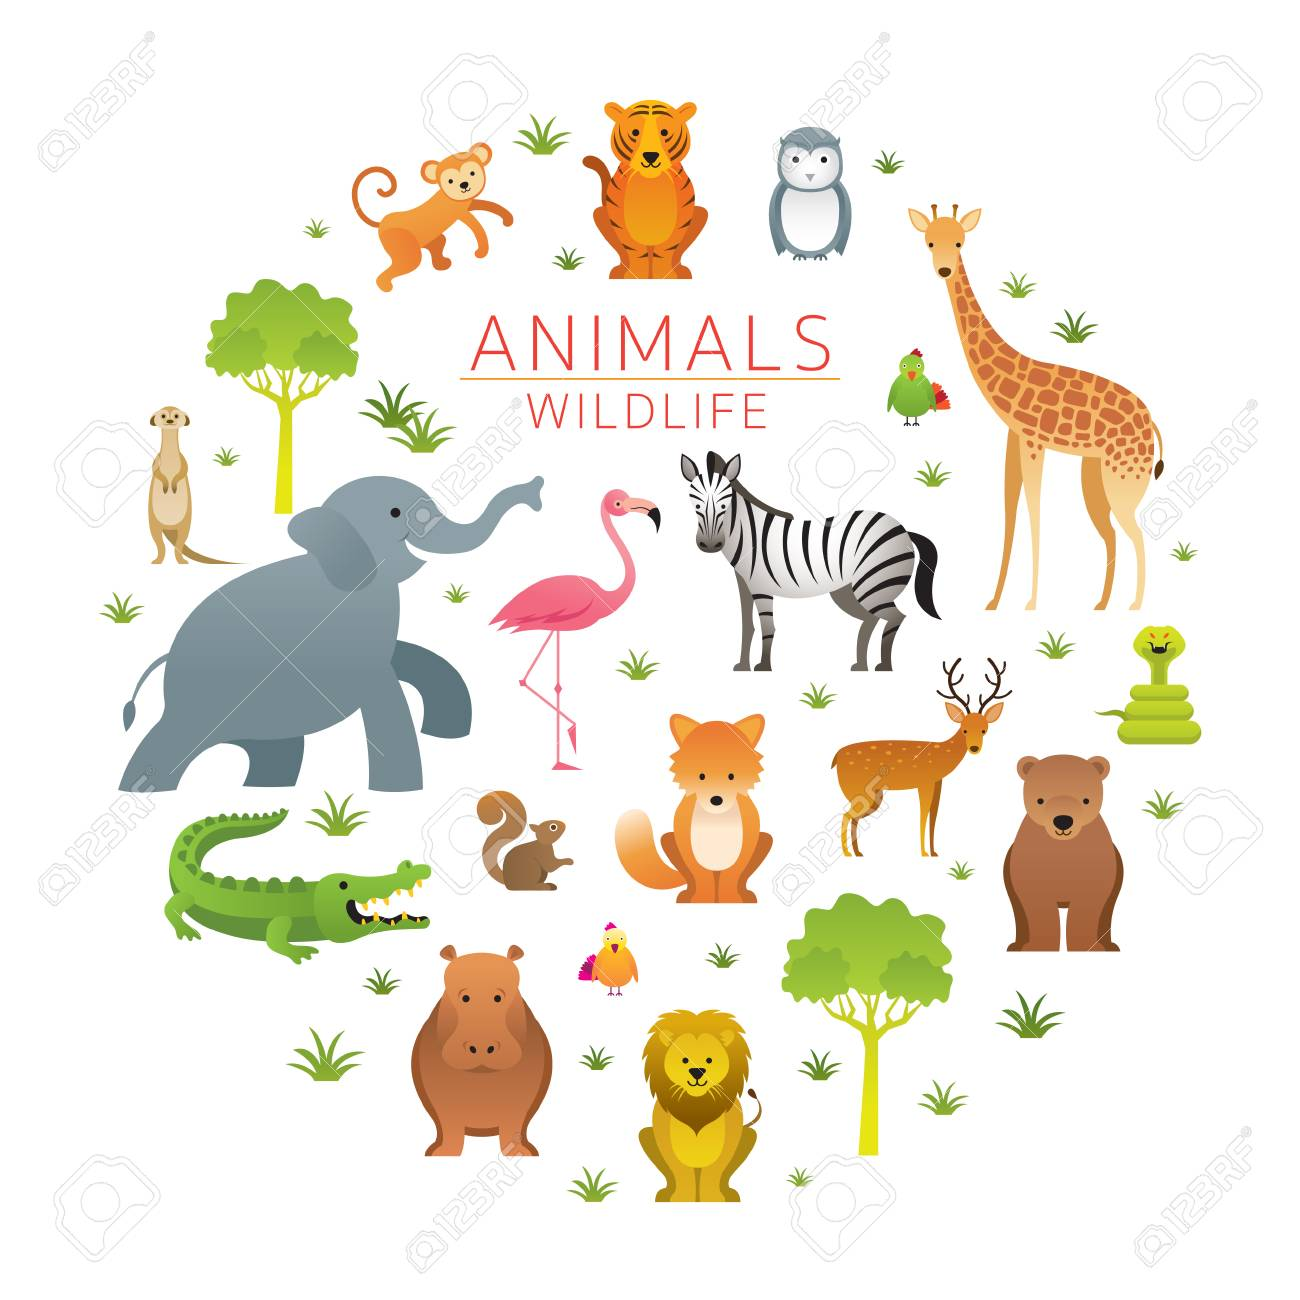 Group Of Wild Animals Zoo Entrance Sign Kids And Cute Cartoon Royalty Free Cliparts Vectors And Stock Illustration Image 114881351